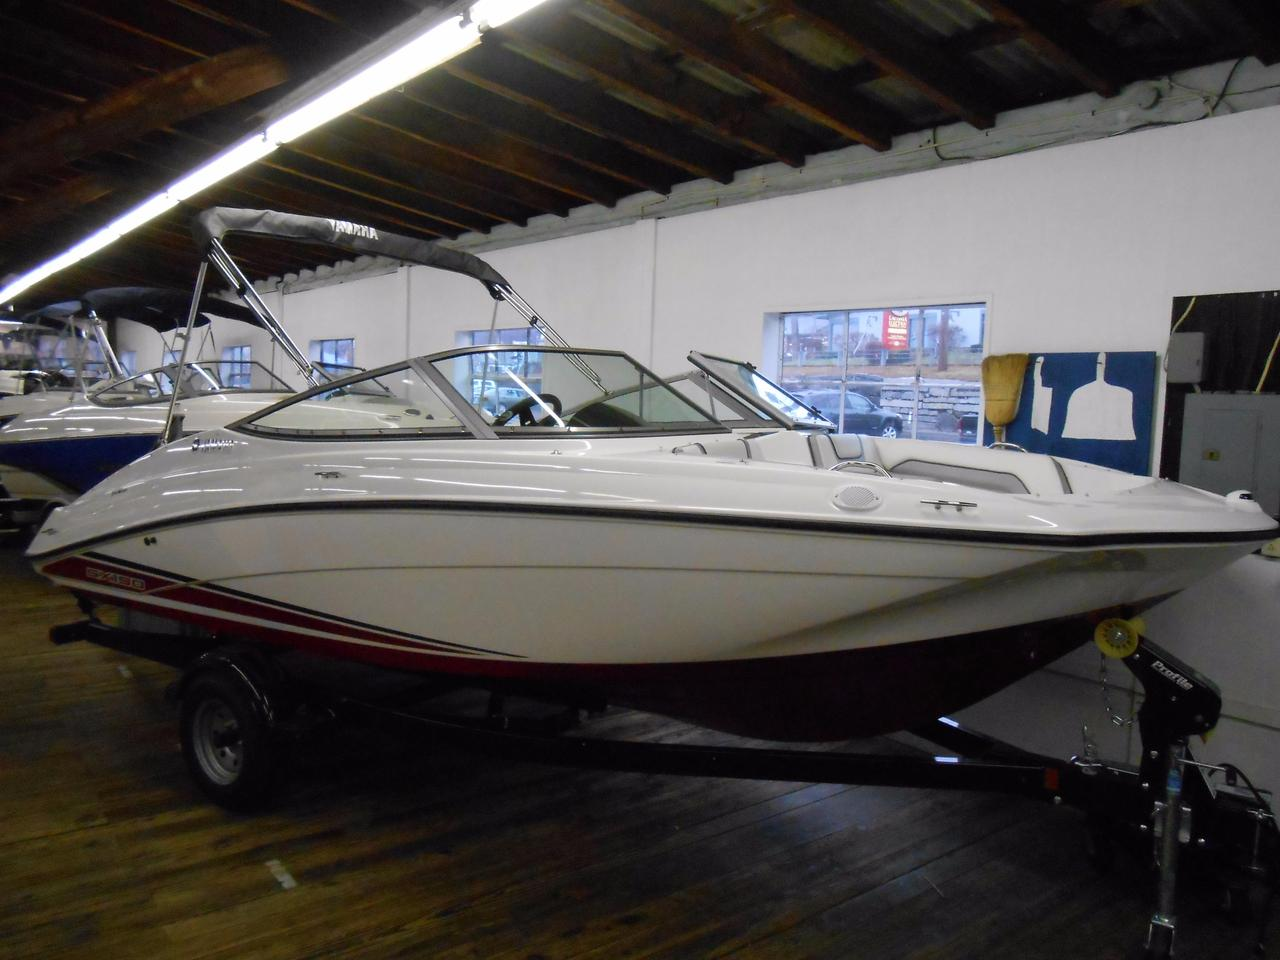 2018 new yamaha sx190 jet boat for sale laconia nh for 2018 yamaha jet boat